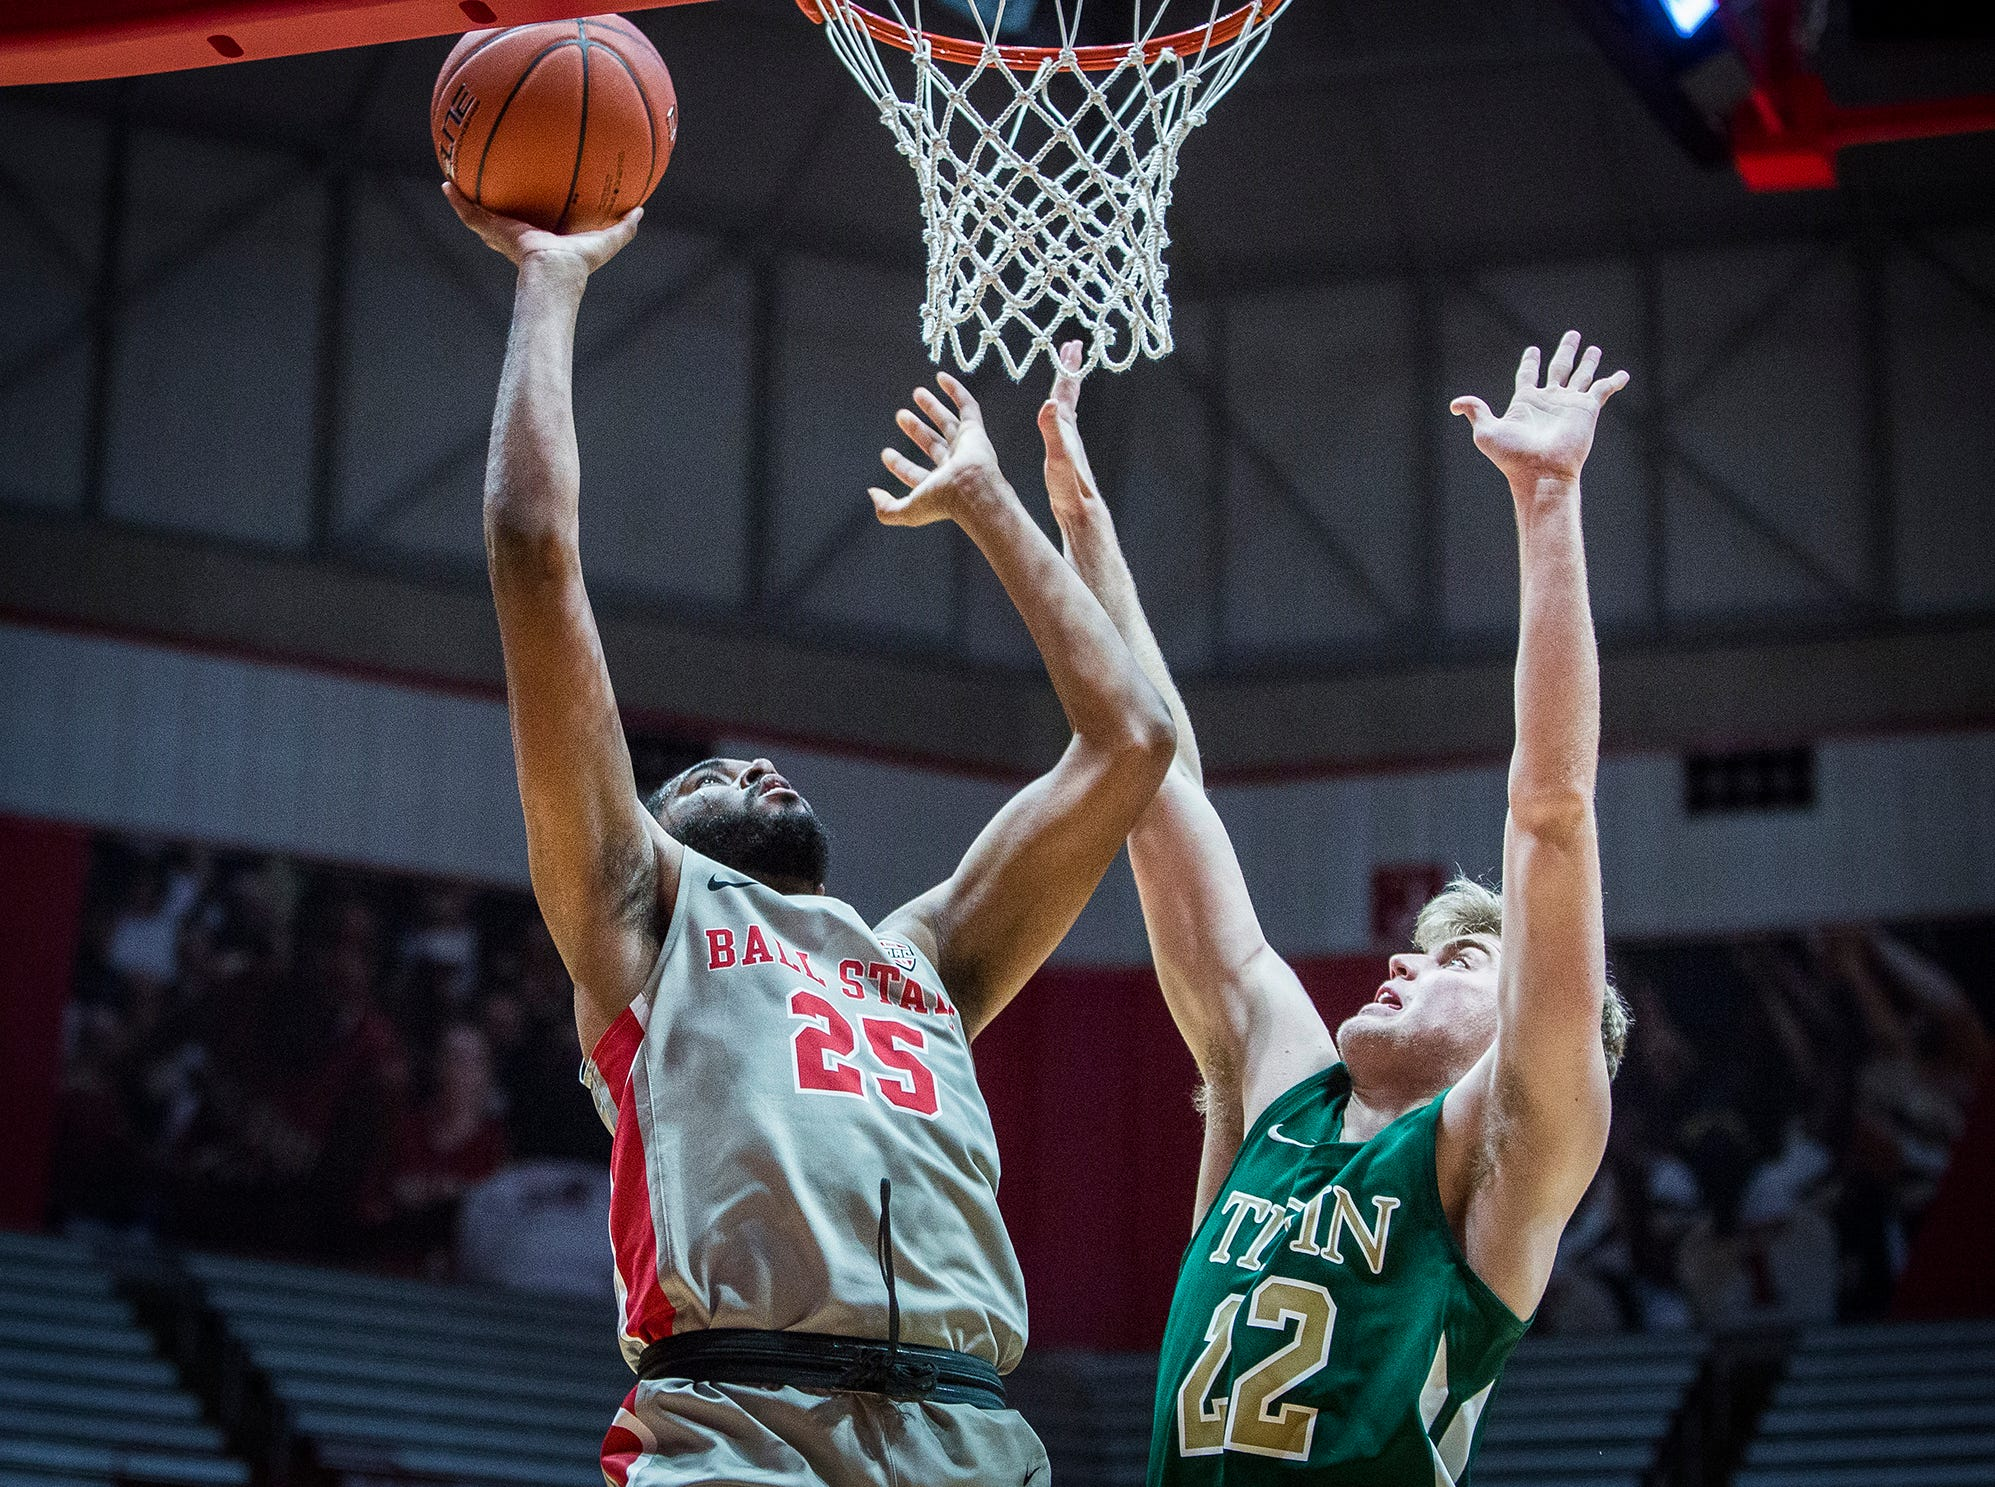 Ball State's Tahjai Teague shoots past Tiffin's defense during their game at Worthen Arena Tuesday, Nov. 27, 2018.